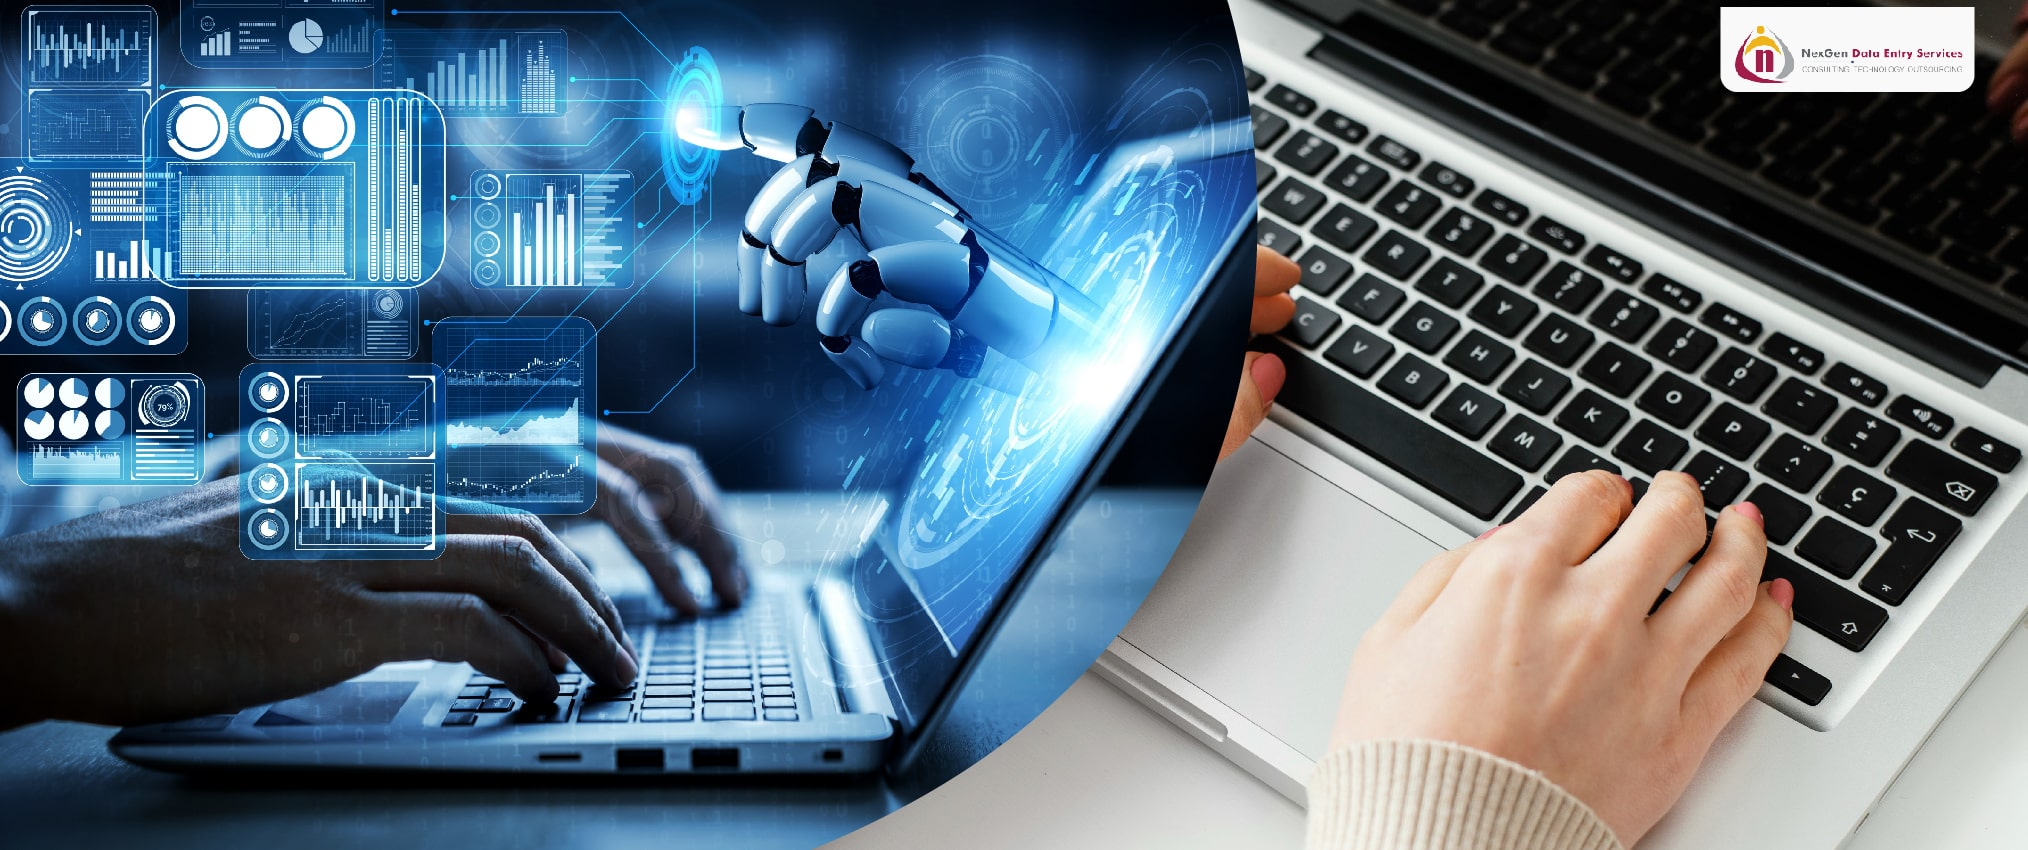 automated web data mining services